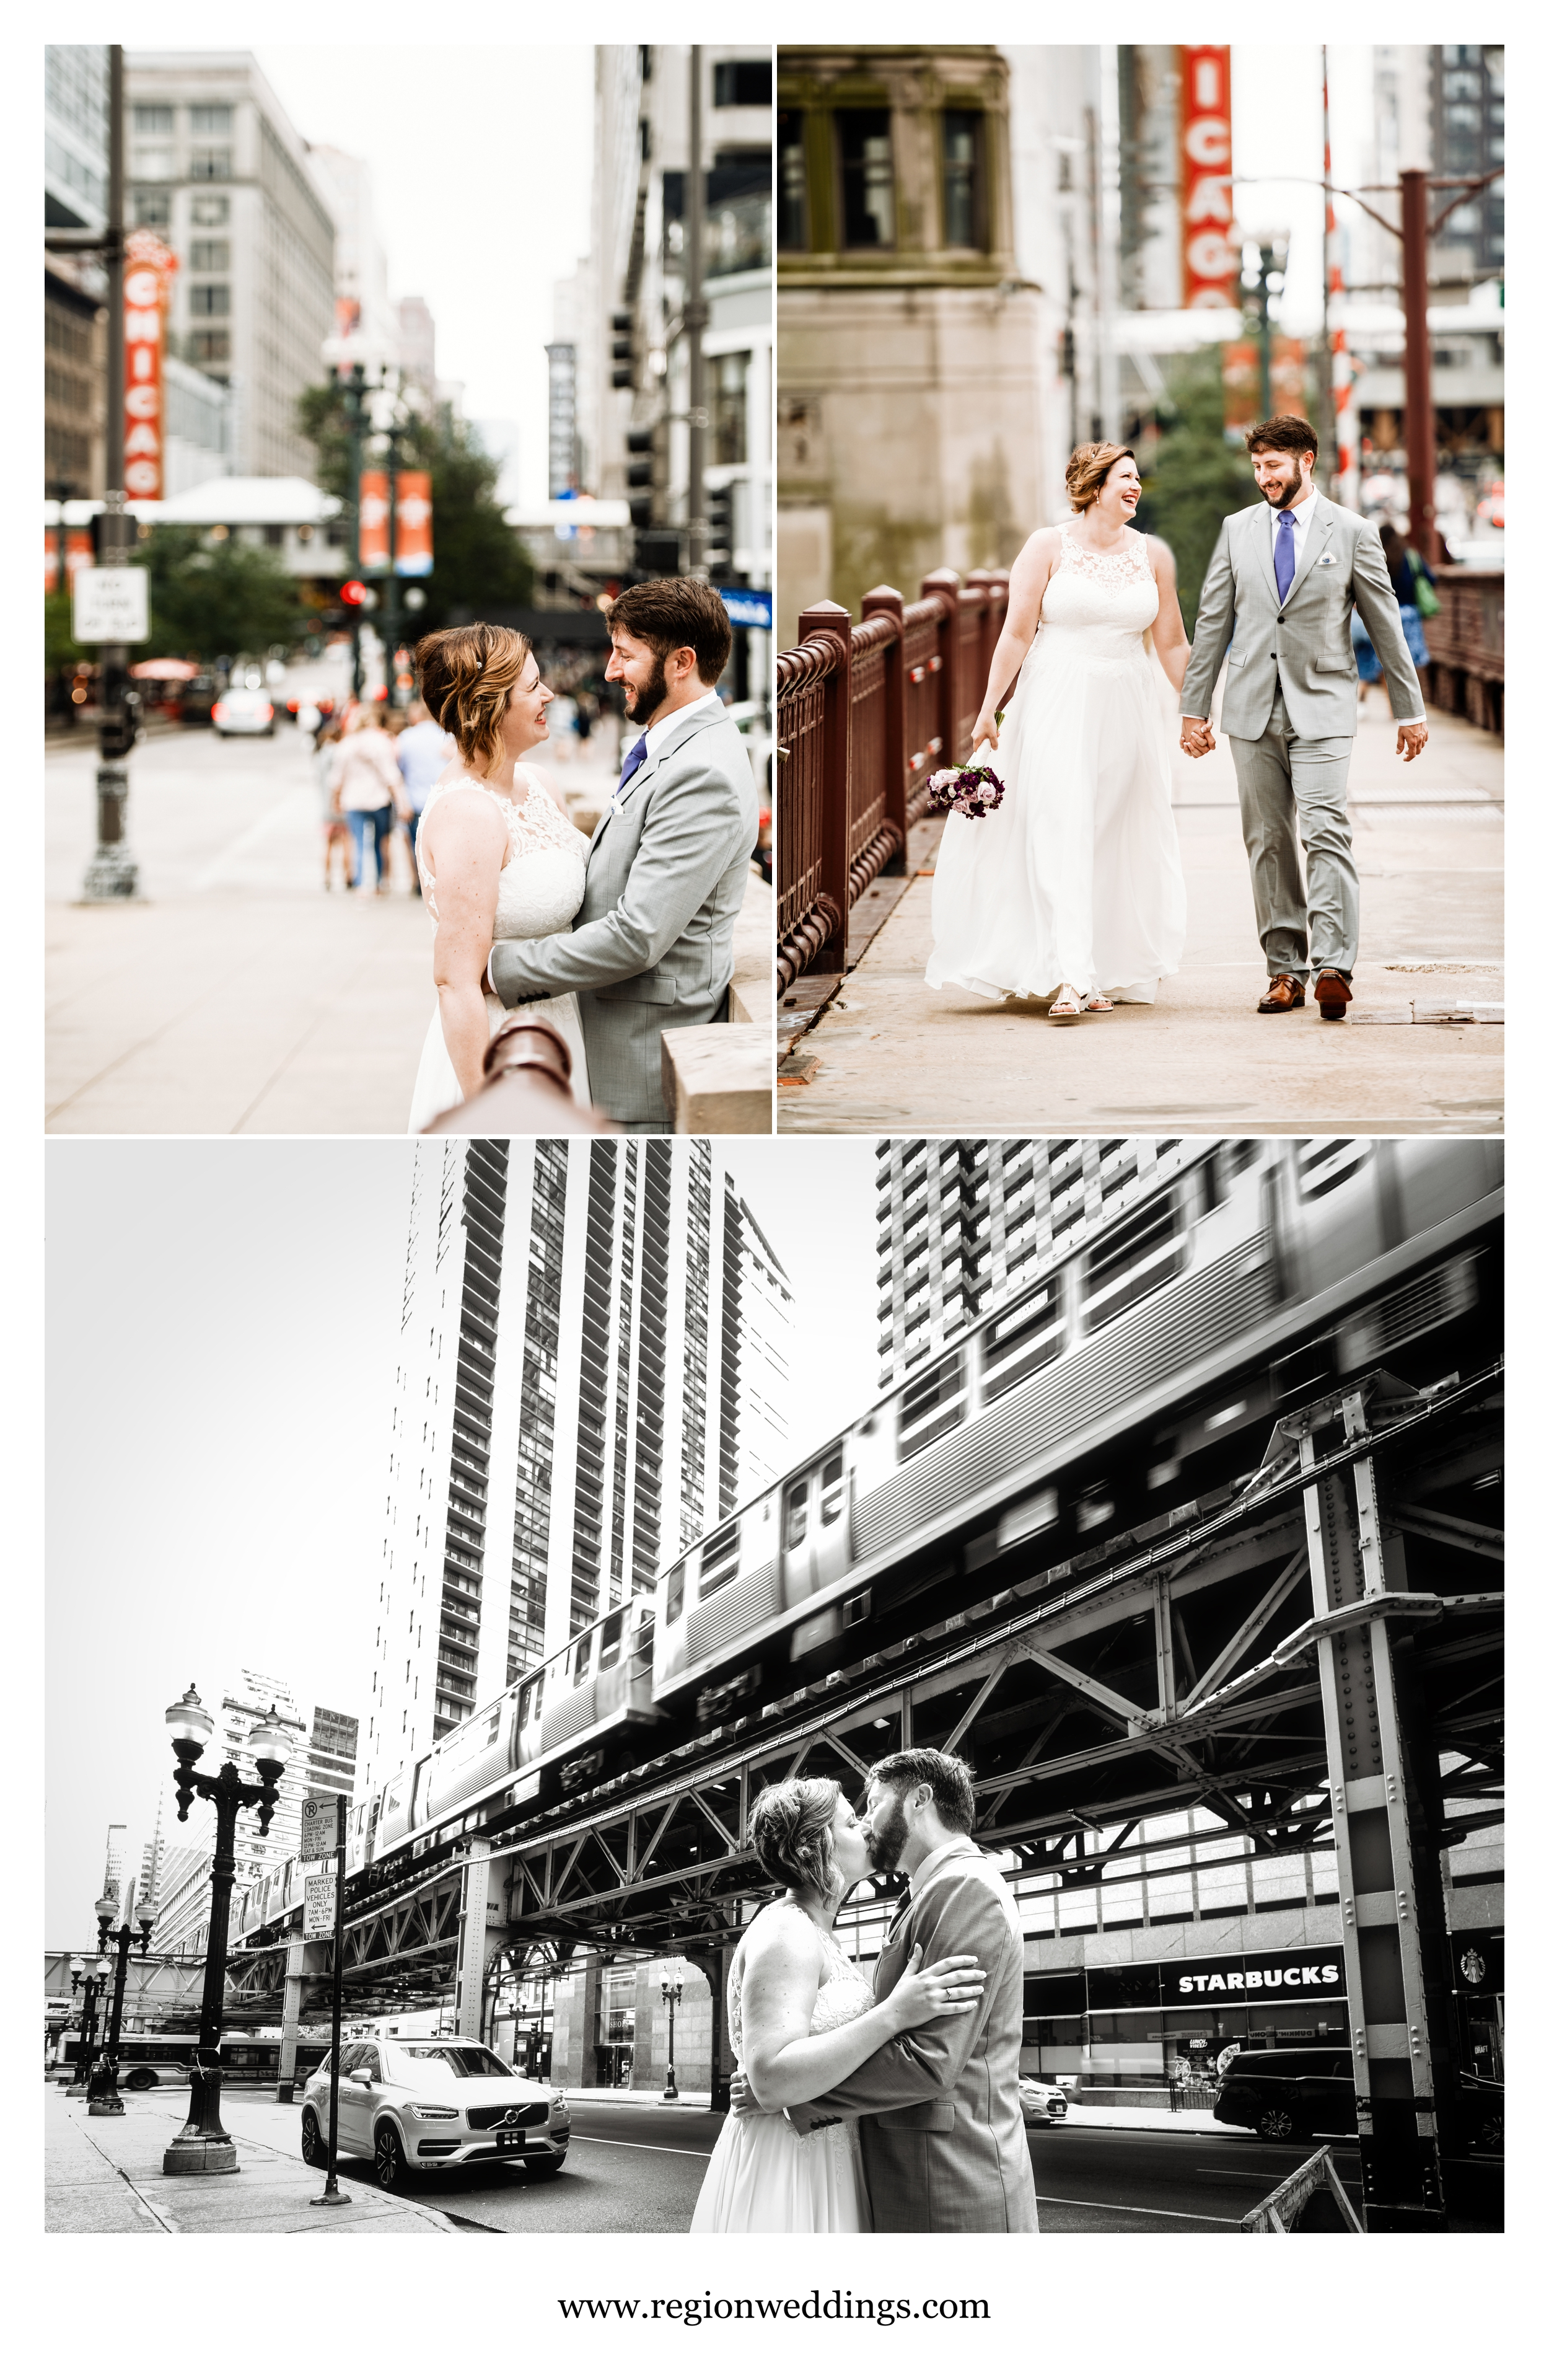 Bride and groom on the streets of Chicago on their wedding day.